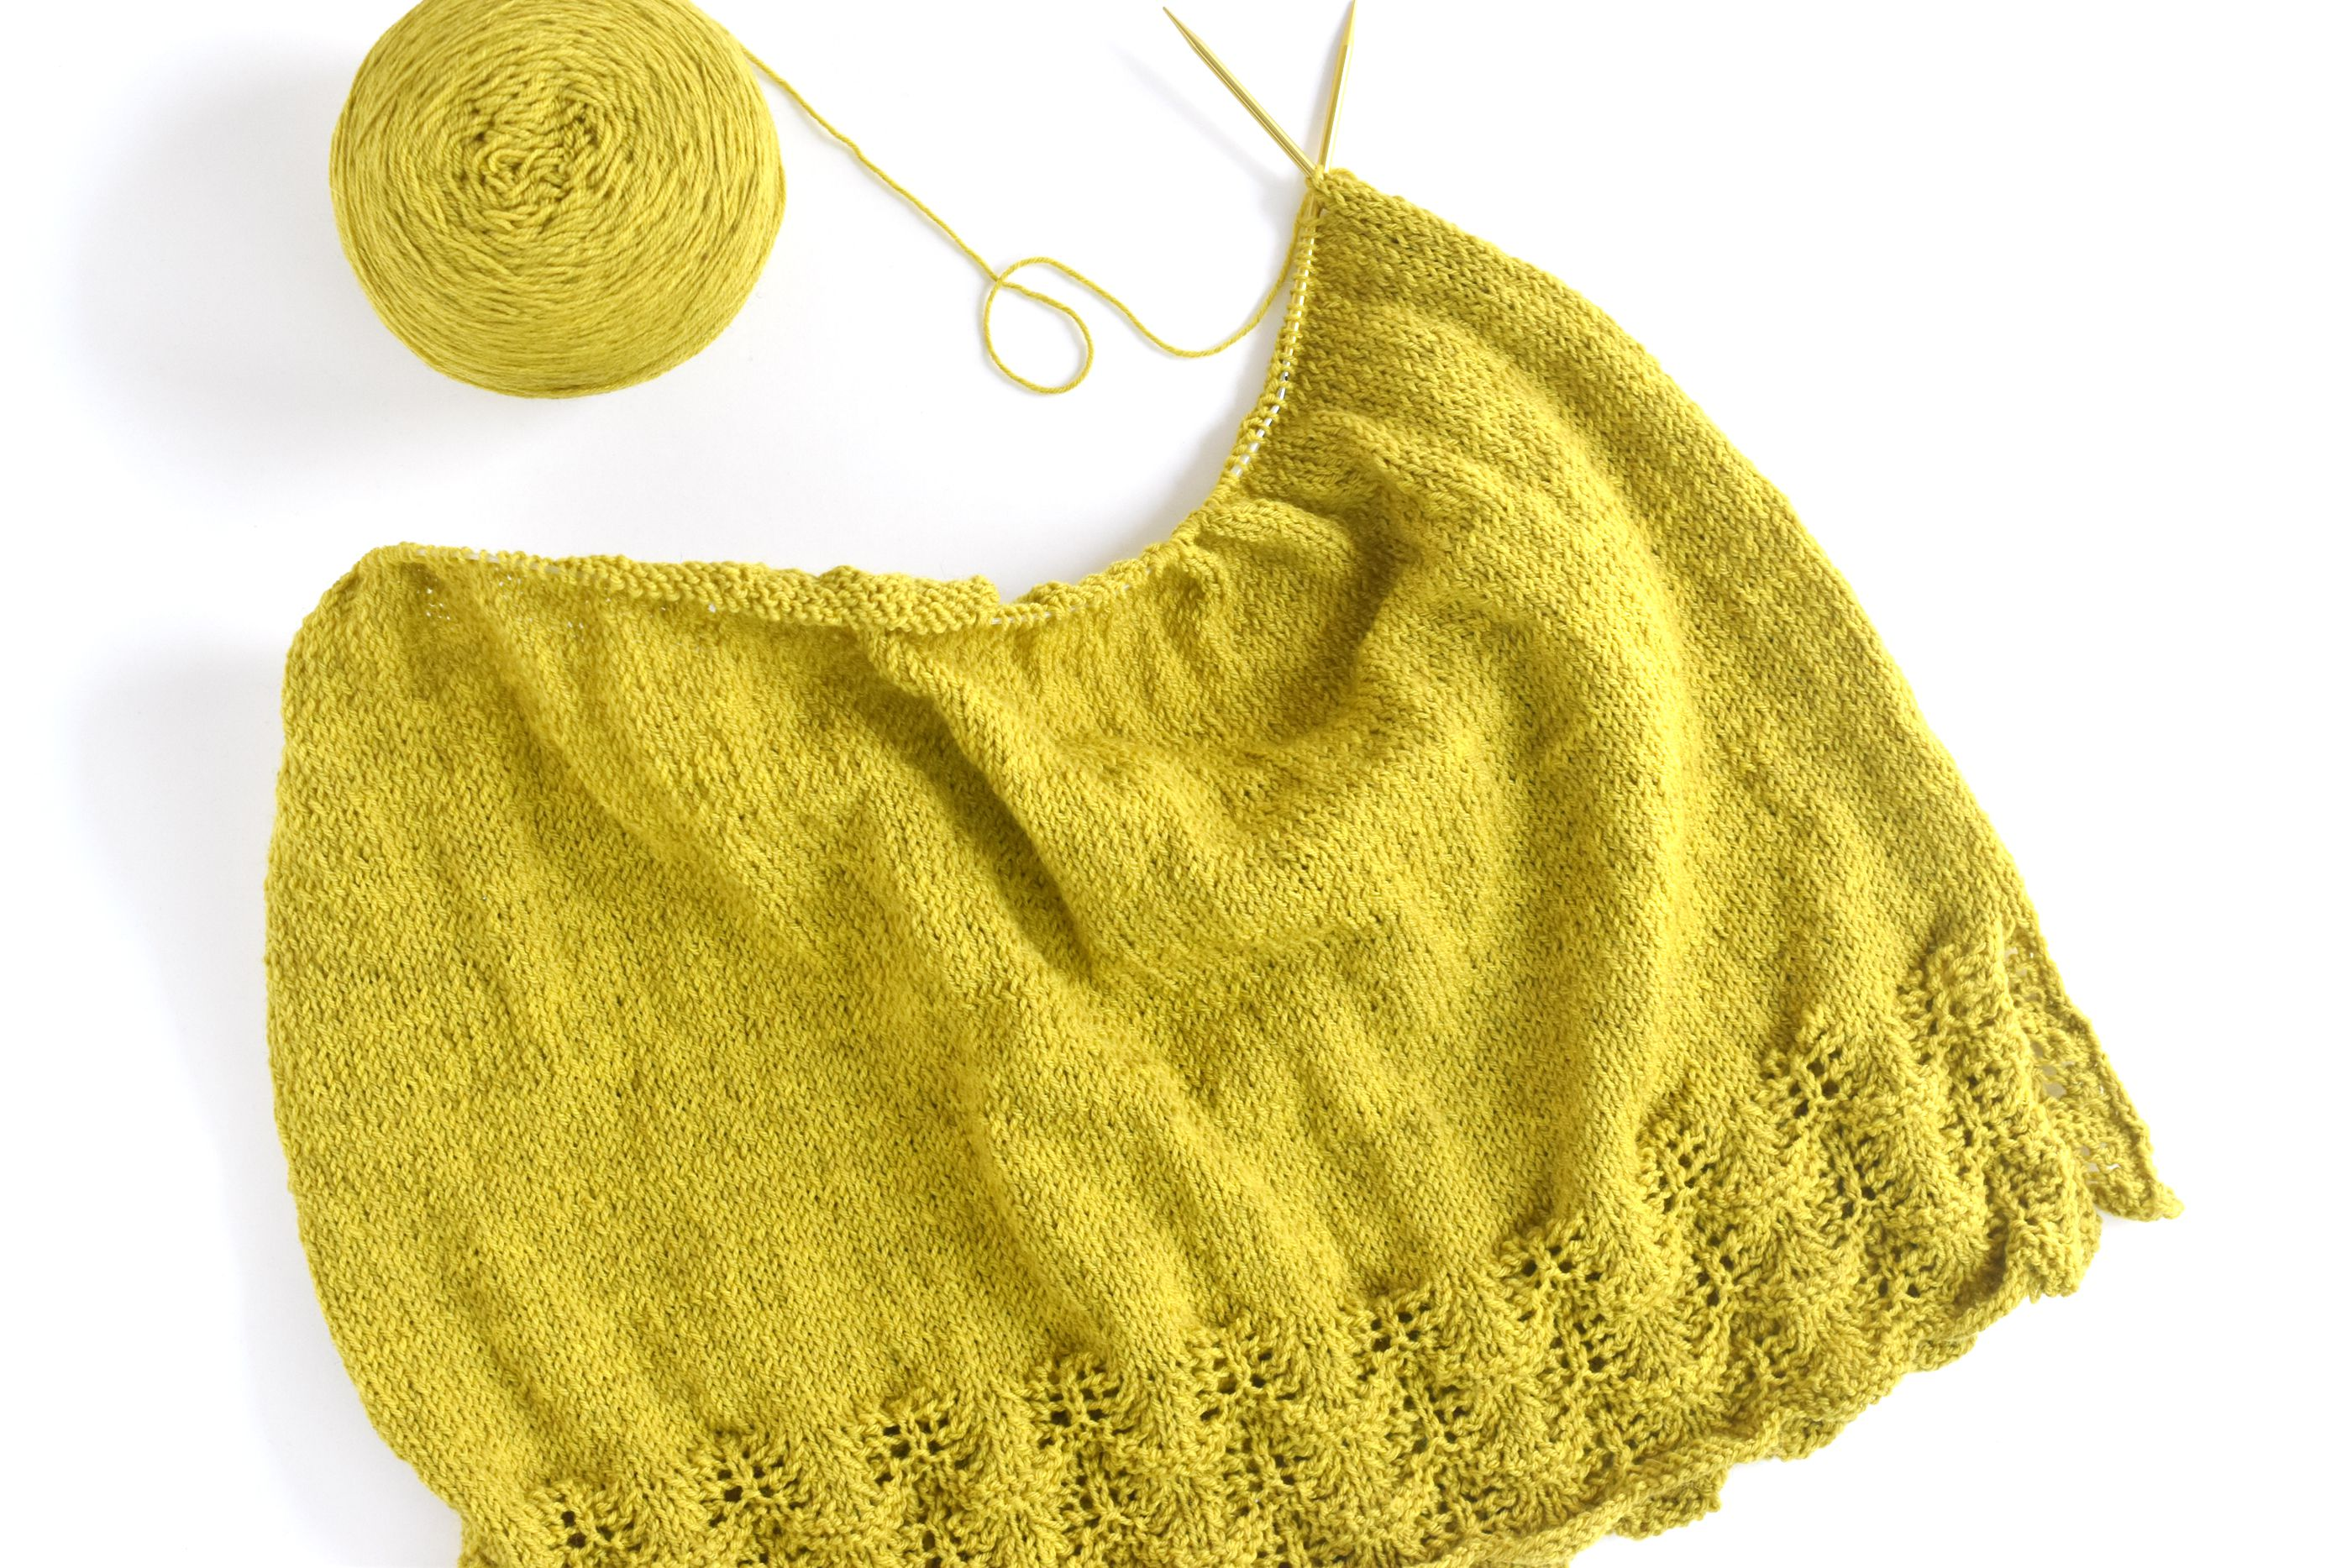 A ball of yarn and two needles next to a torso of a tunic